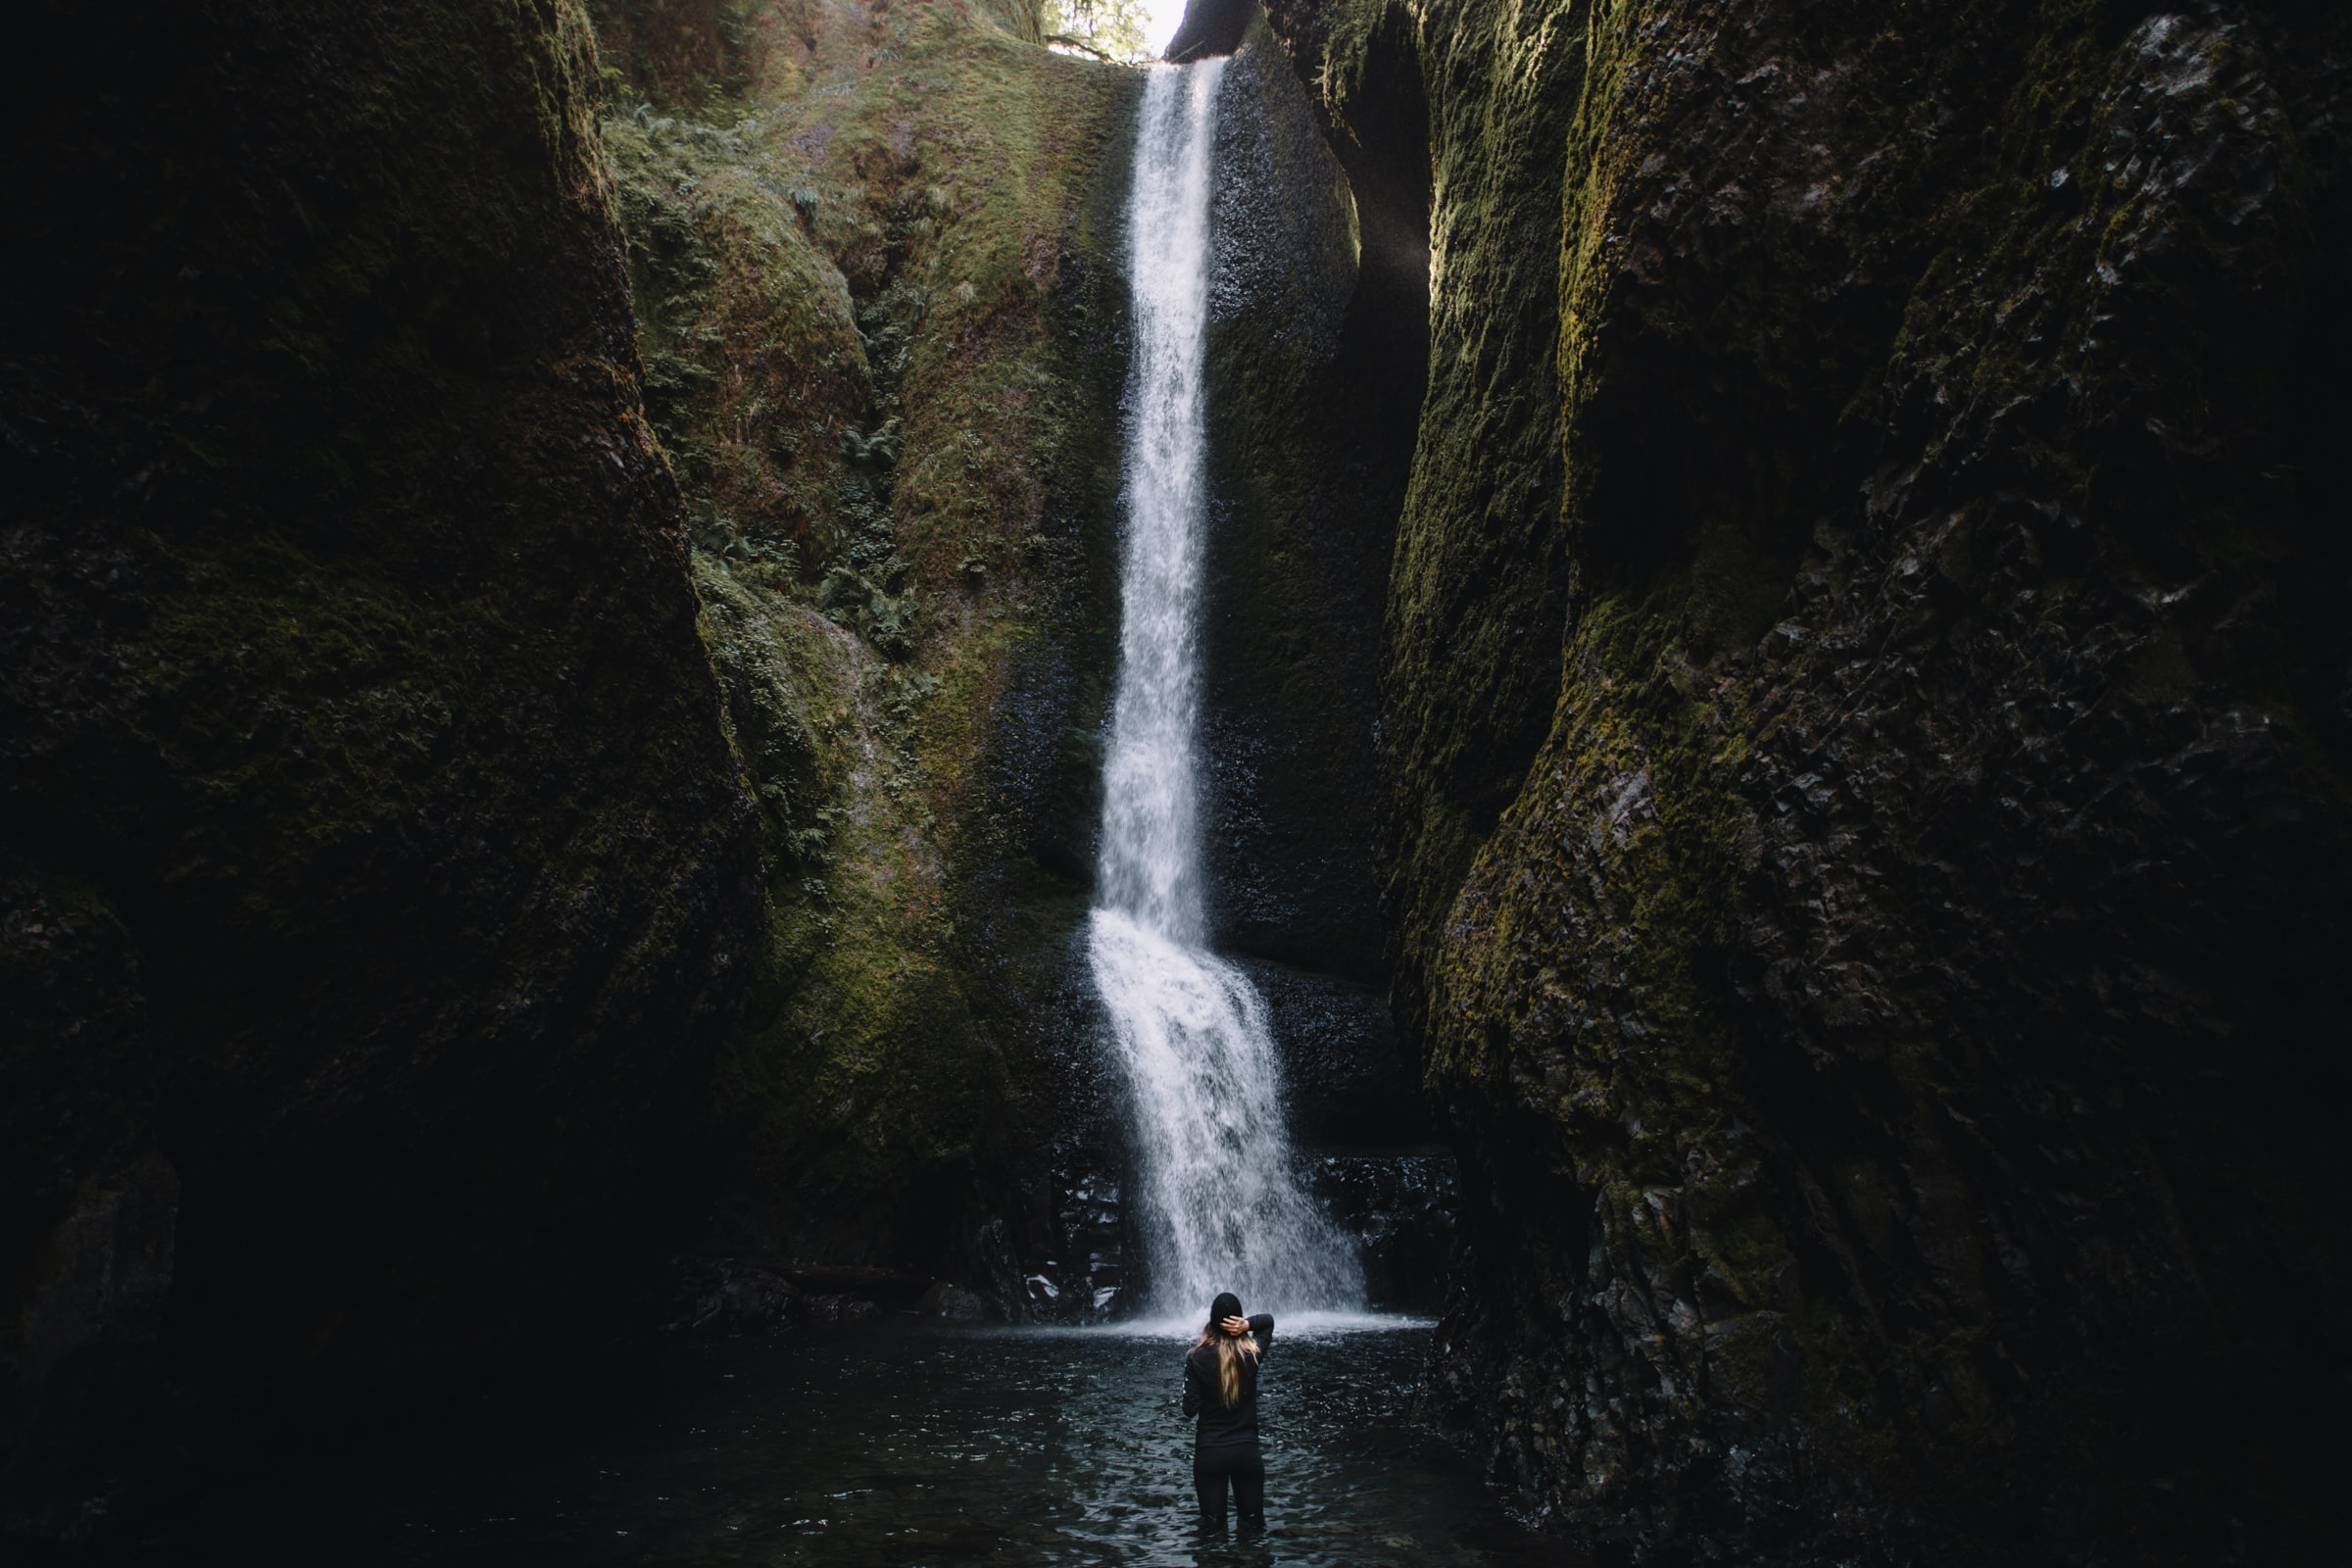 person stands in front of waterfalls during daytime